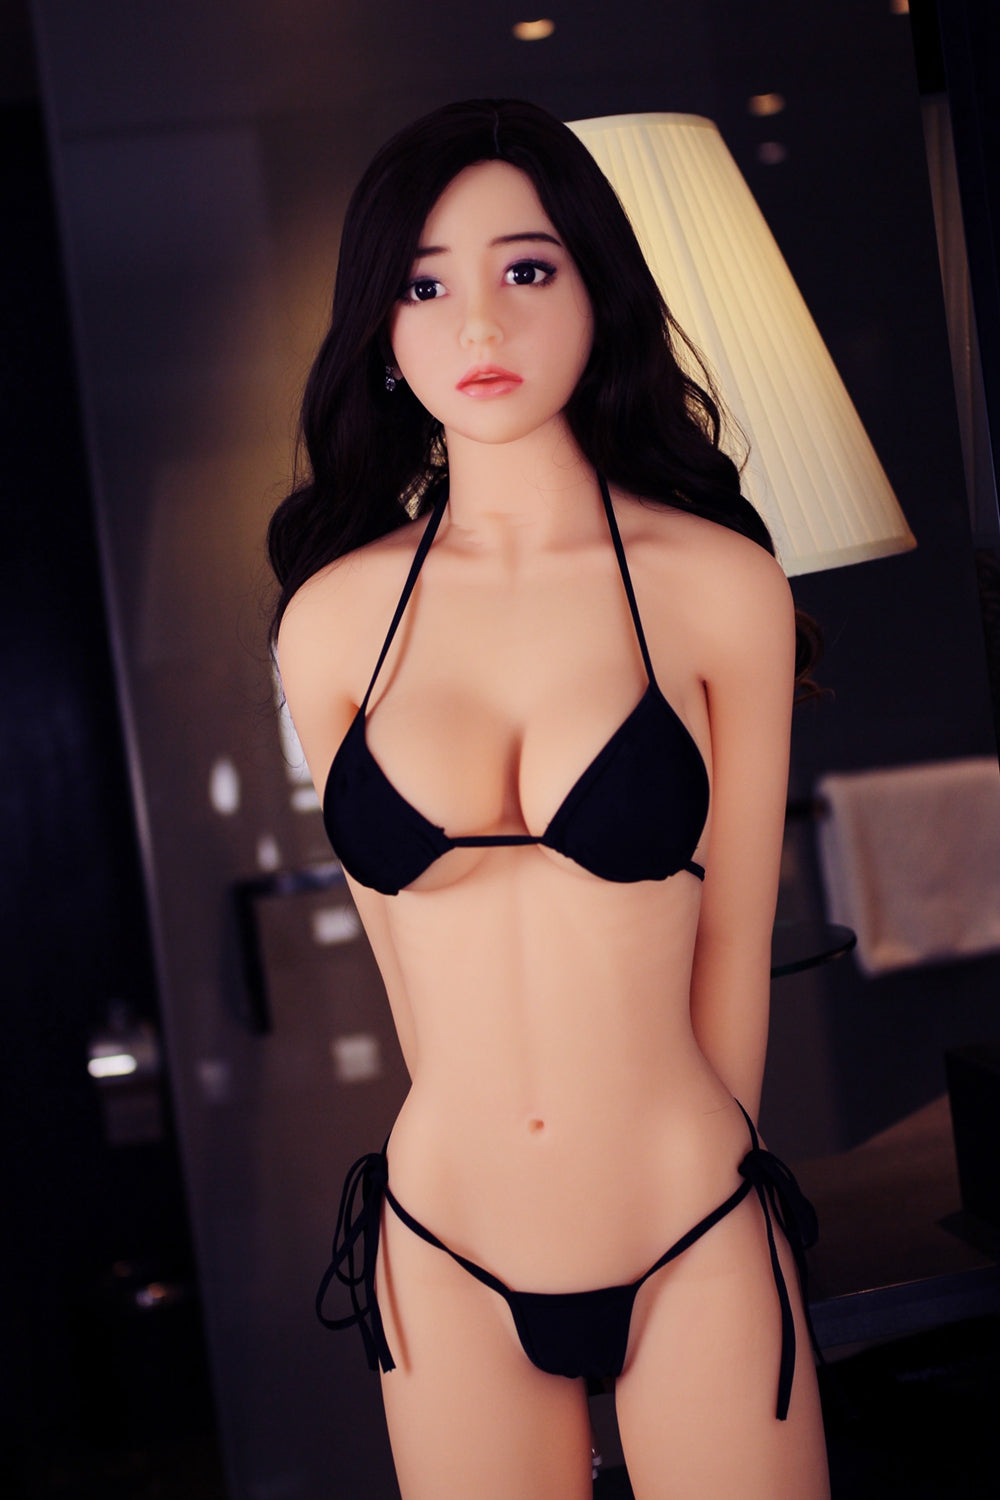 JY Dolls 168cm Sex Doll | Hope